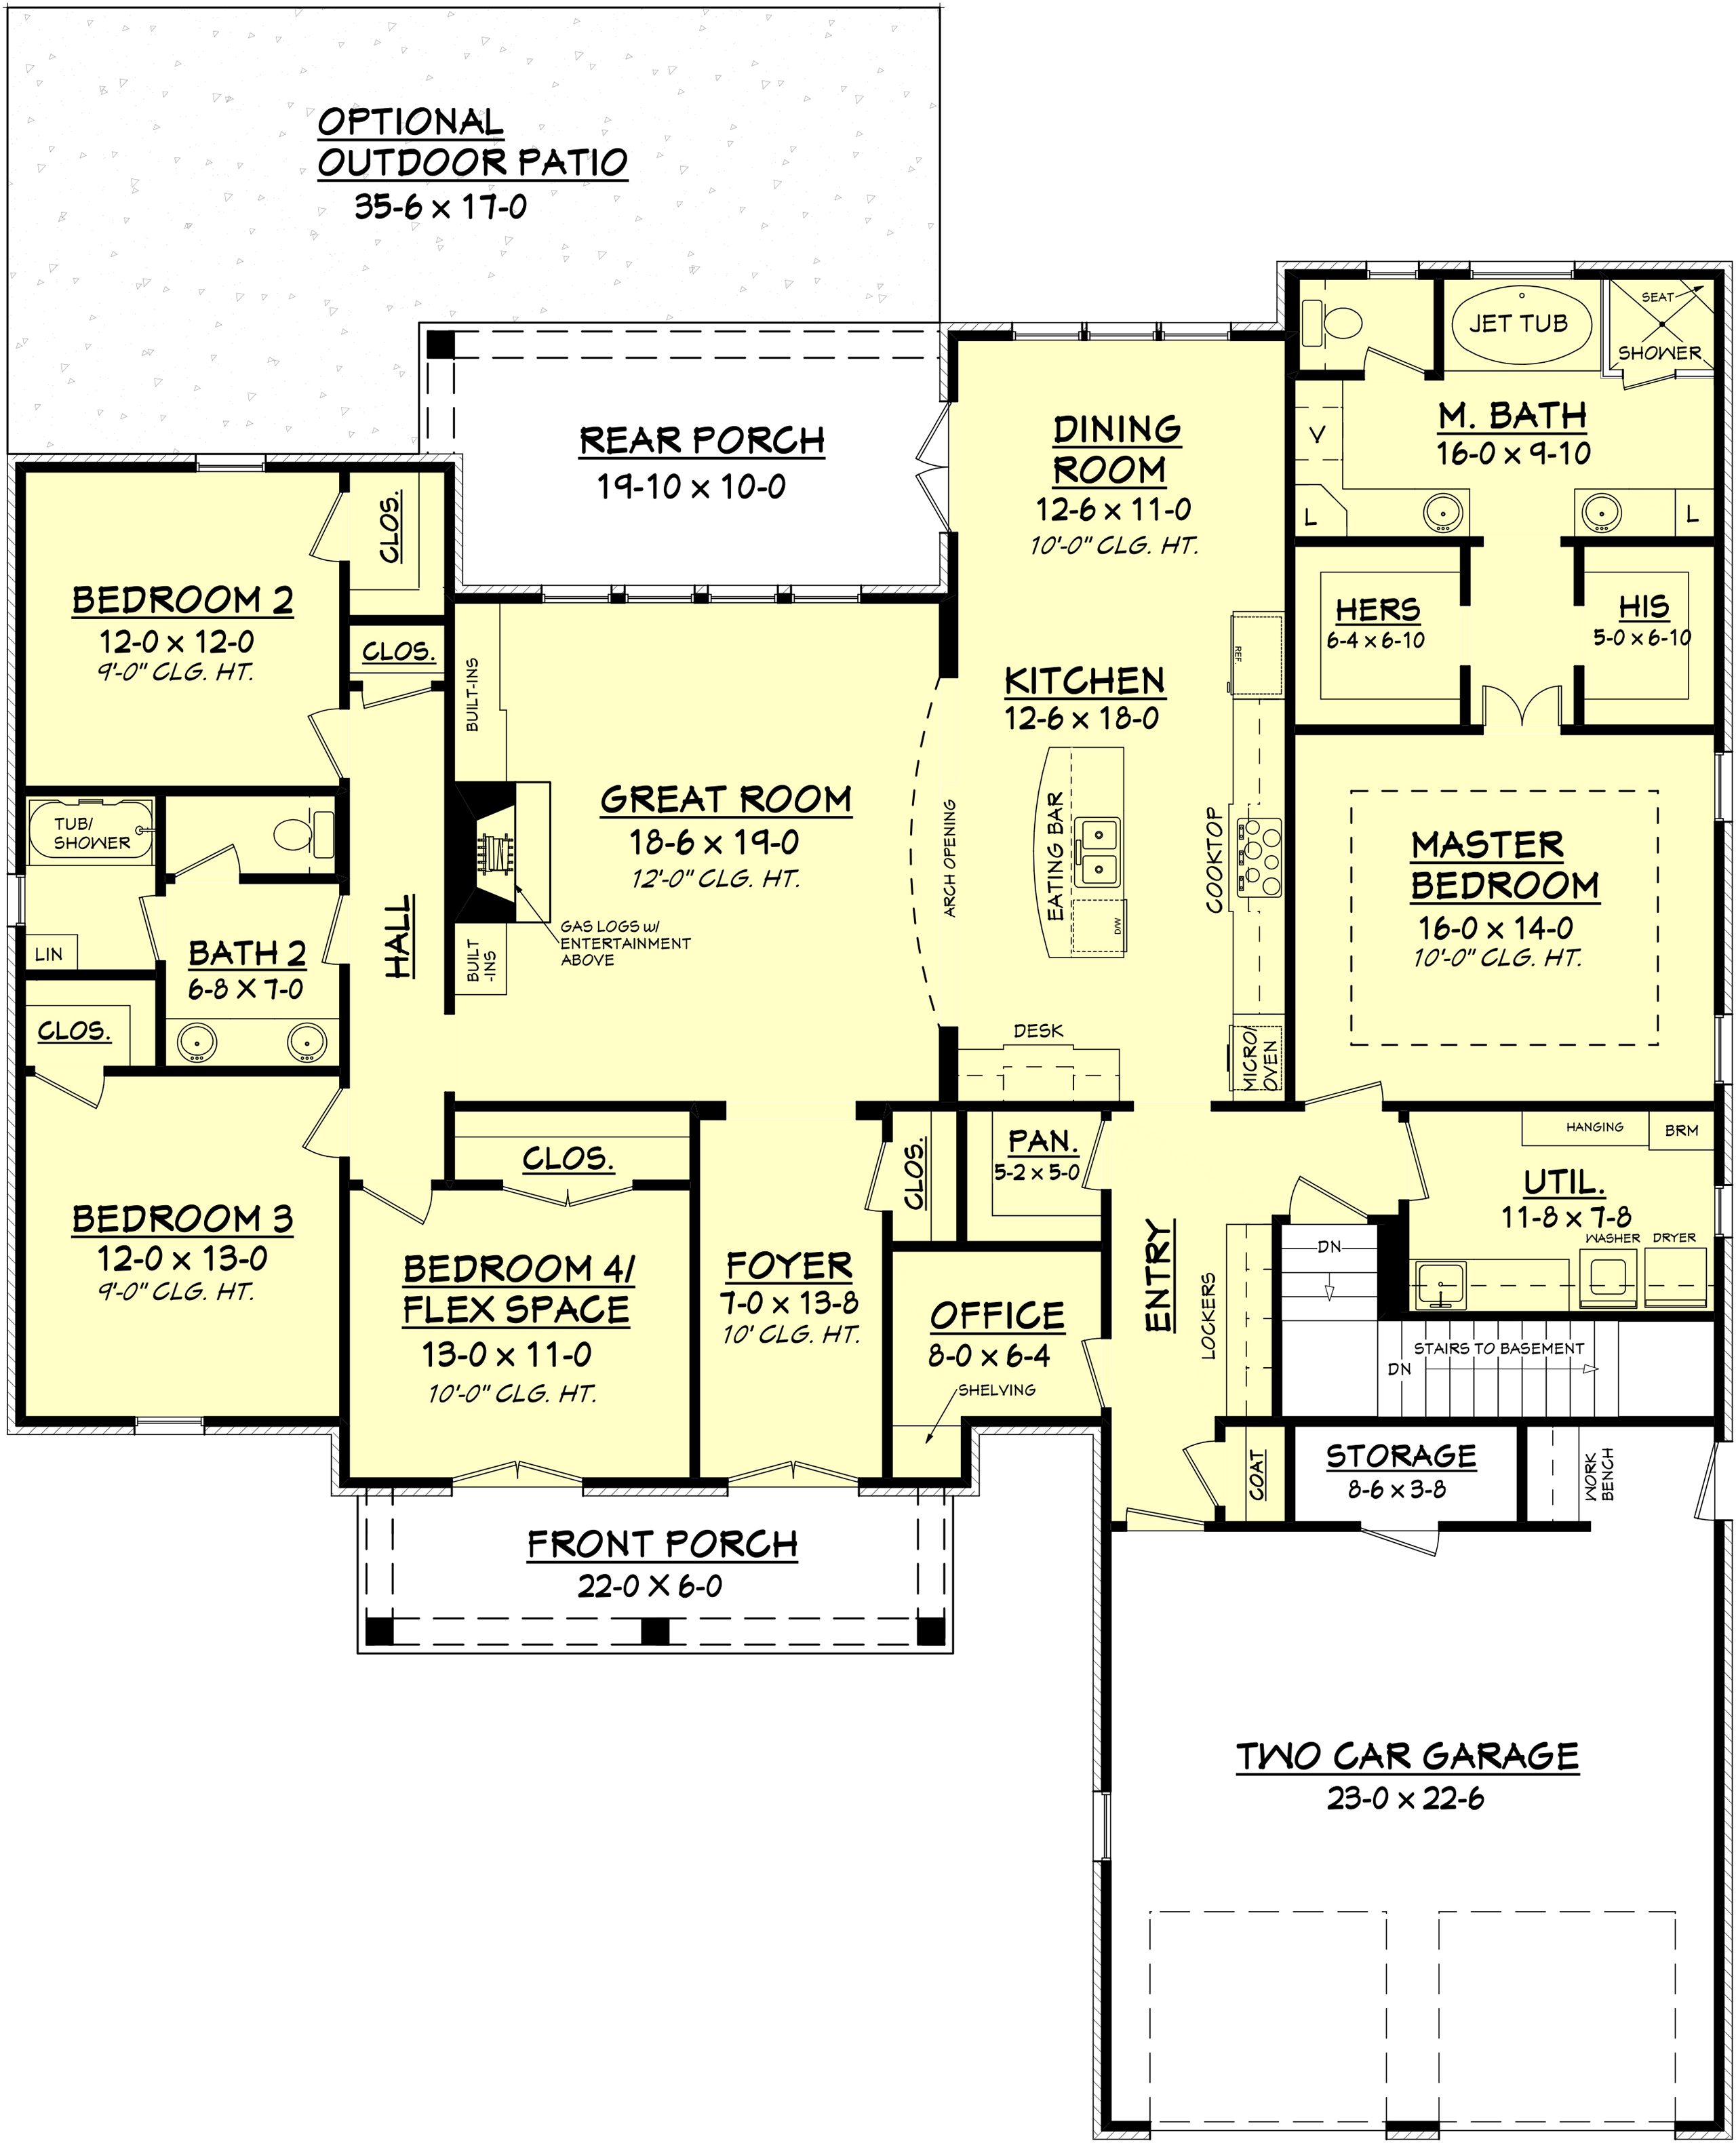 House plan 142 1100 4 bdrm 2 480 sq ft european home for How much is 1100 square feet